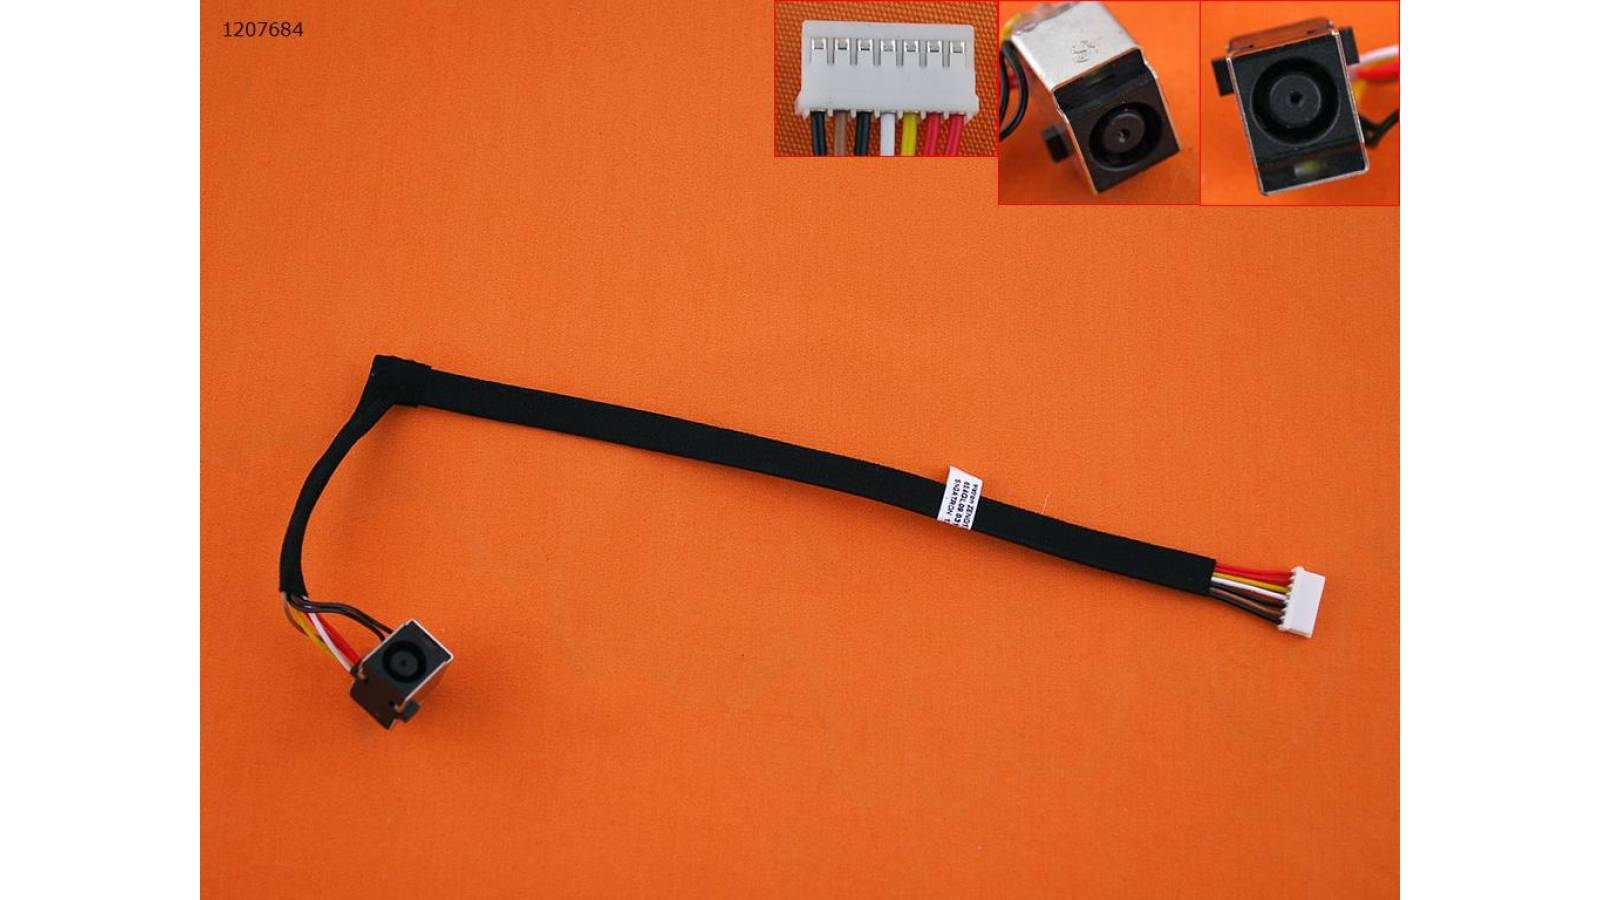 DC JACK  POWER HP PROBOOK 4520S 4525S SERIES(WITH CABLE)